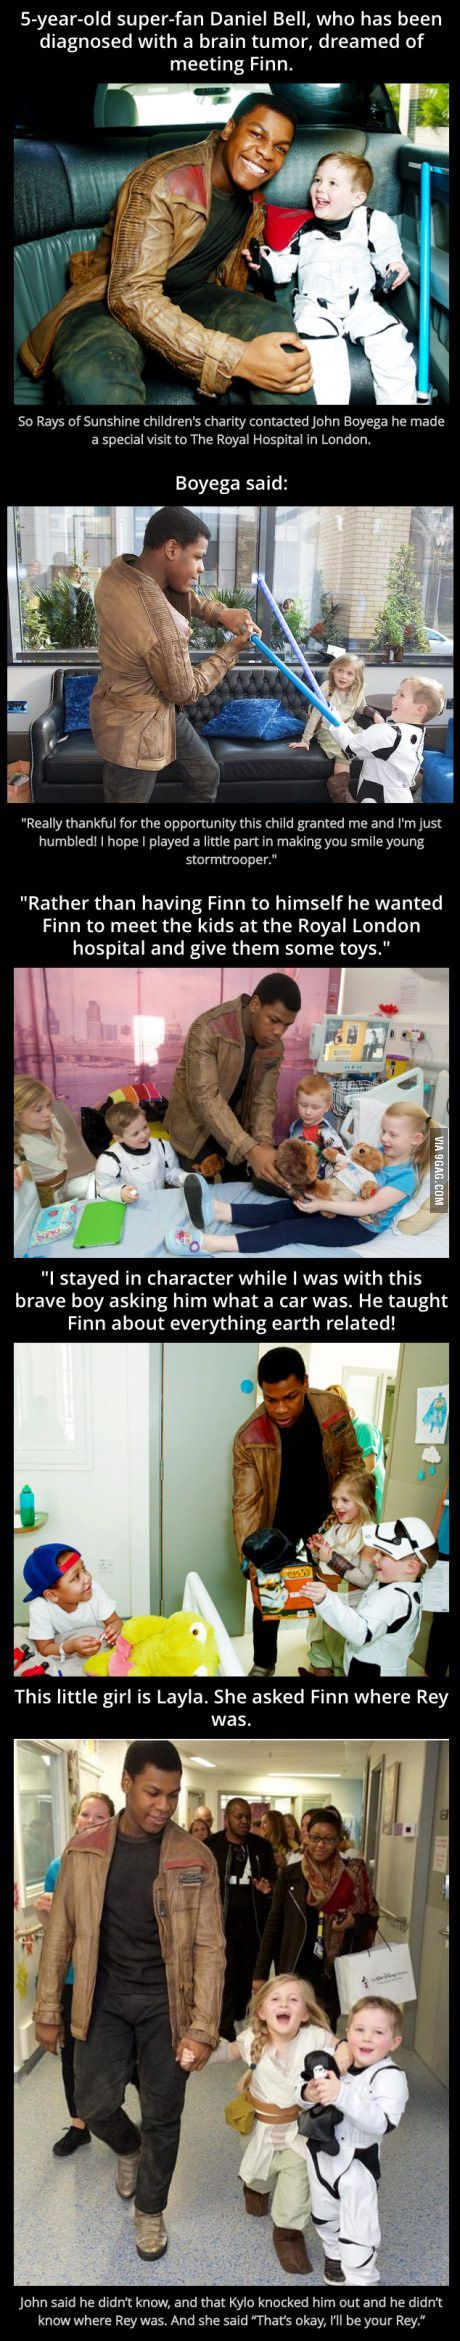 What an awesome thing to do! Sounds like a very cool guy. Plus, It's so sweet when kids grow up not learning to look at color!